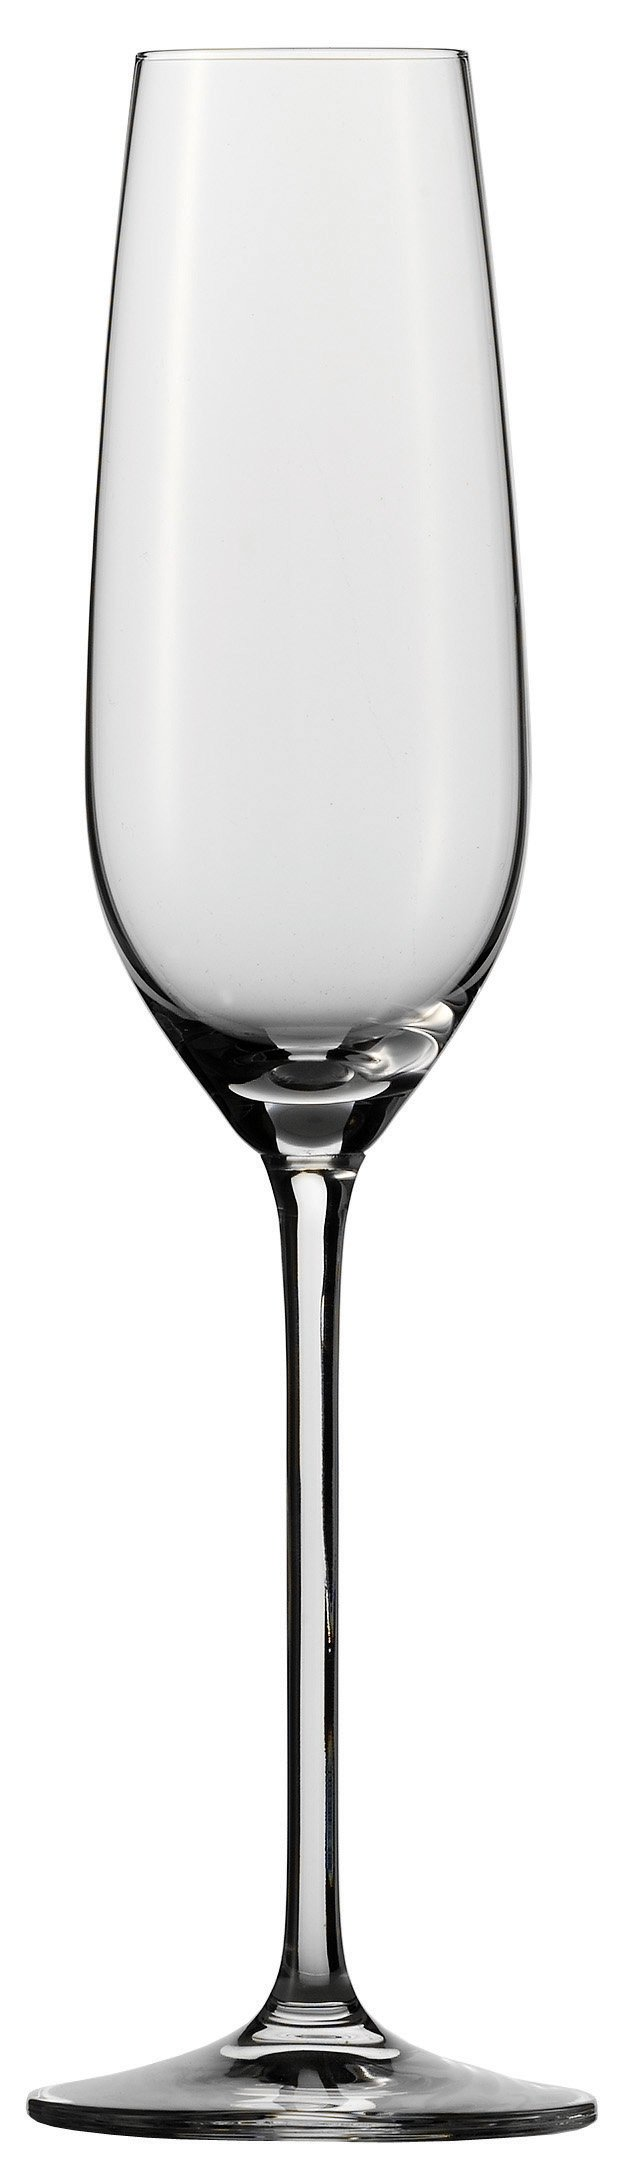 Schott Zwiesel Stemware Fortissimo Collection Tritan Crystal Champagne Flute Glass with Effervescence Points, 8.1-Ounce, Set of 6